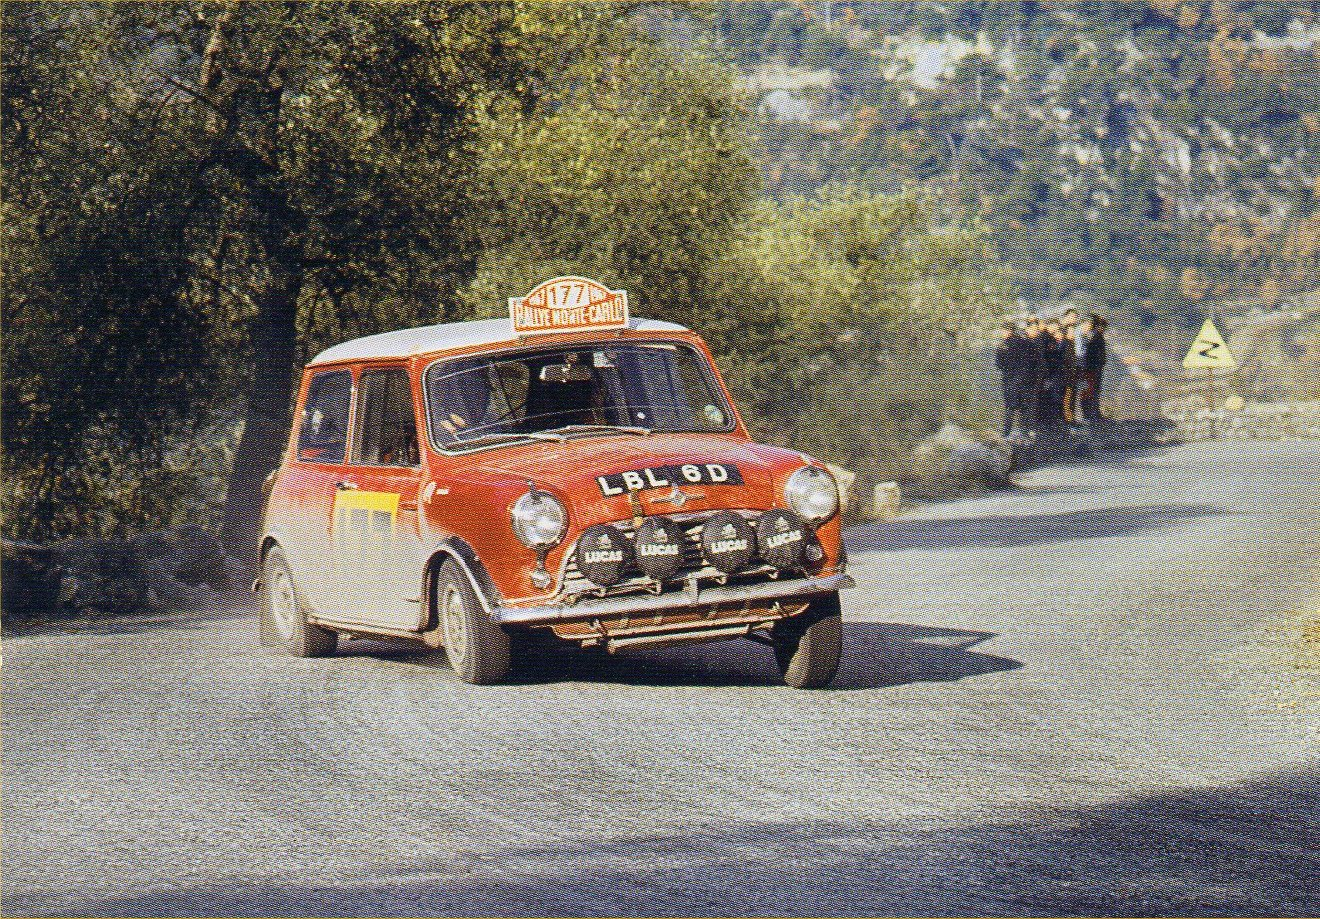 The Hyppy: A rally blog: Nearly Great Rally Cars: The One Hit Wonders